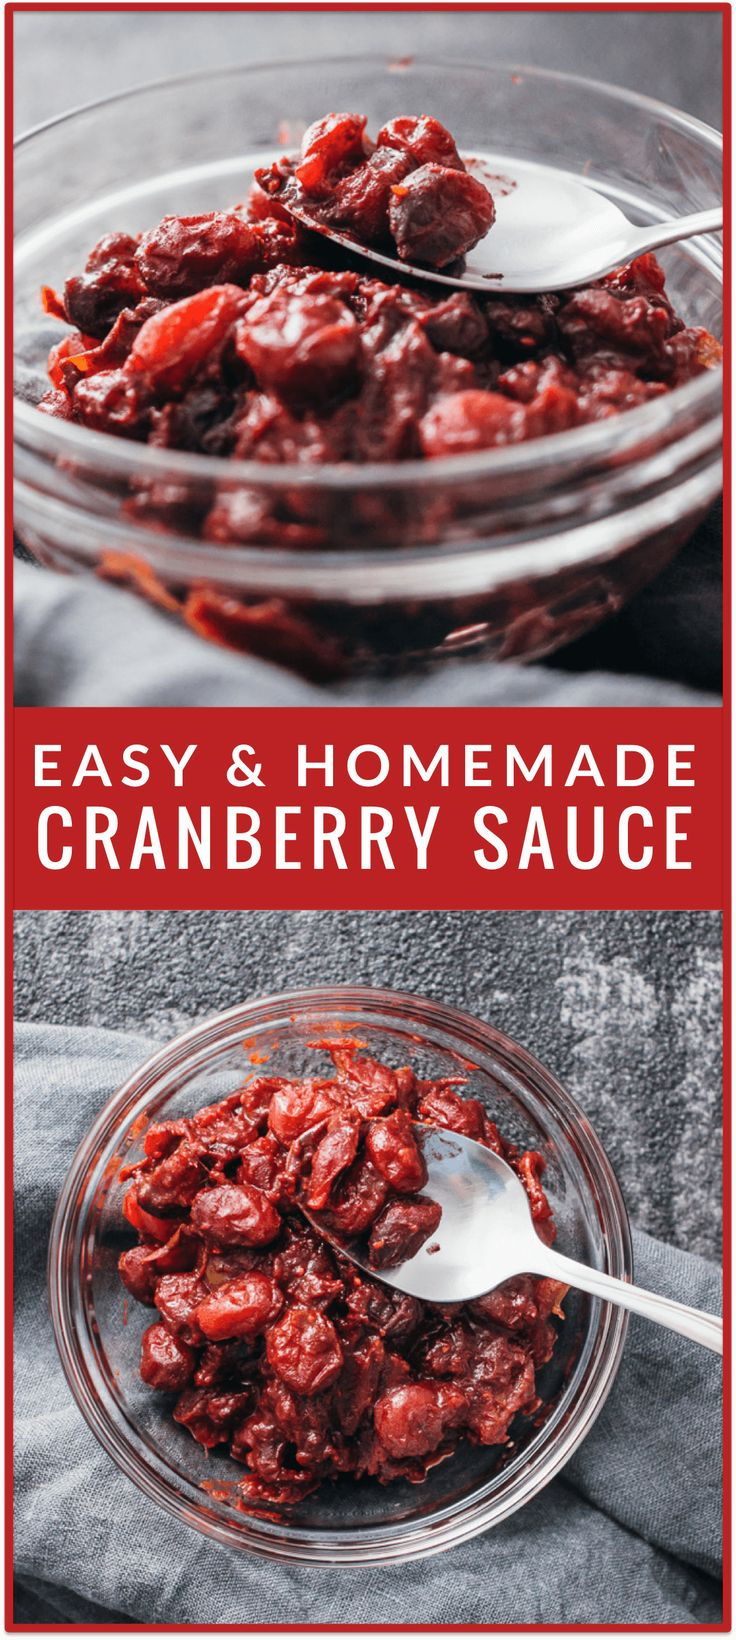 Easy homemade cranberry sauce - Today I'm sharing a wonderful family recipe for cranberry sauce! This is a healthy cinnamon-rich cranberry sauce sweetened using medjool dates with no added sugar. It's very easy to make this at home (one-pot recipe done in